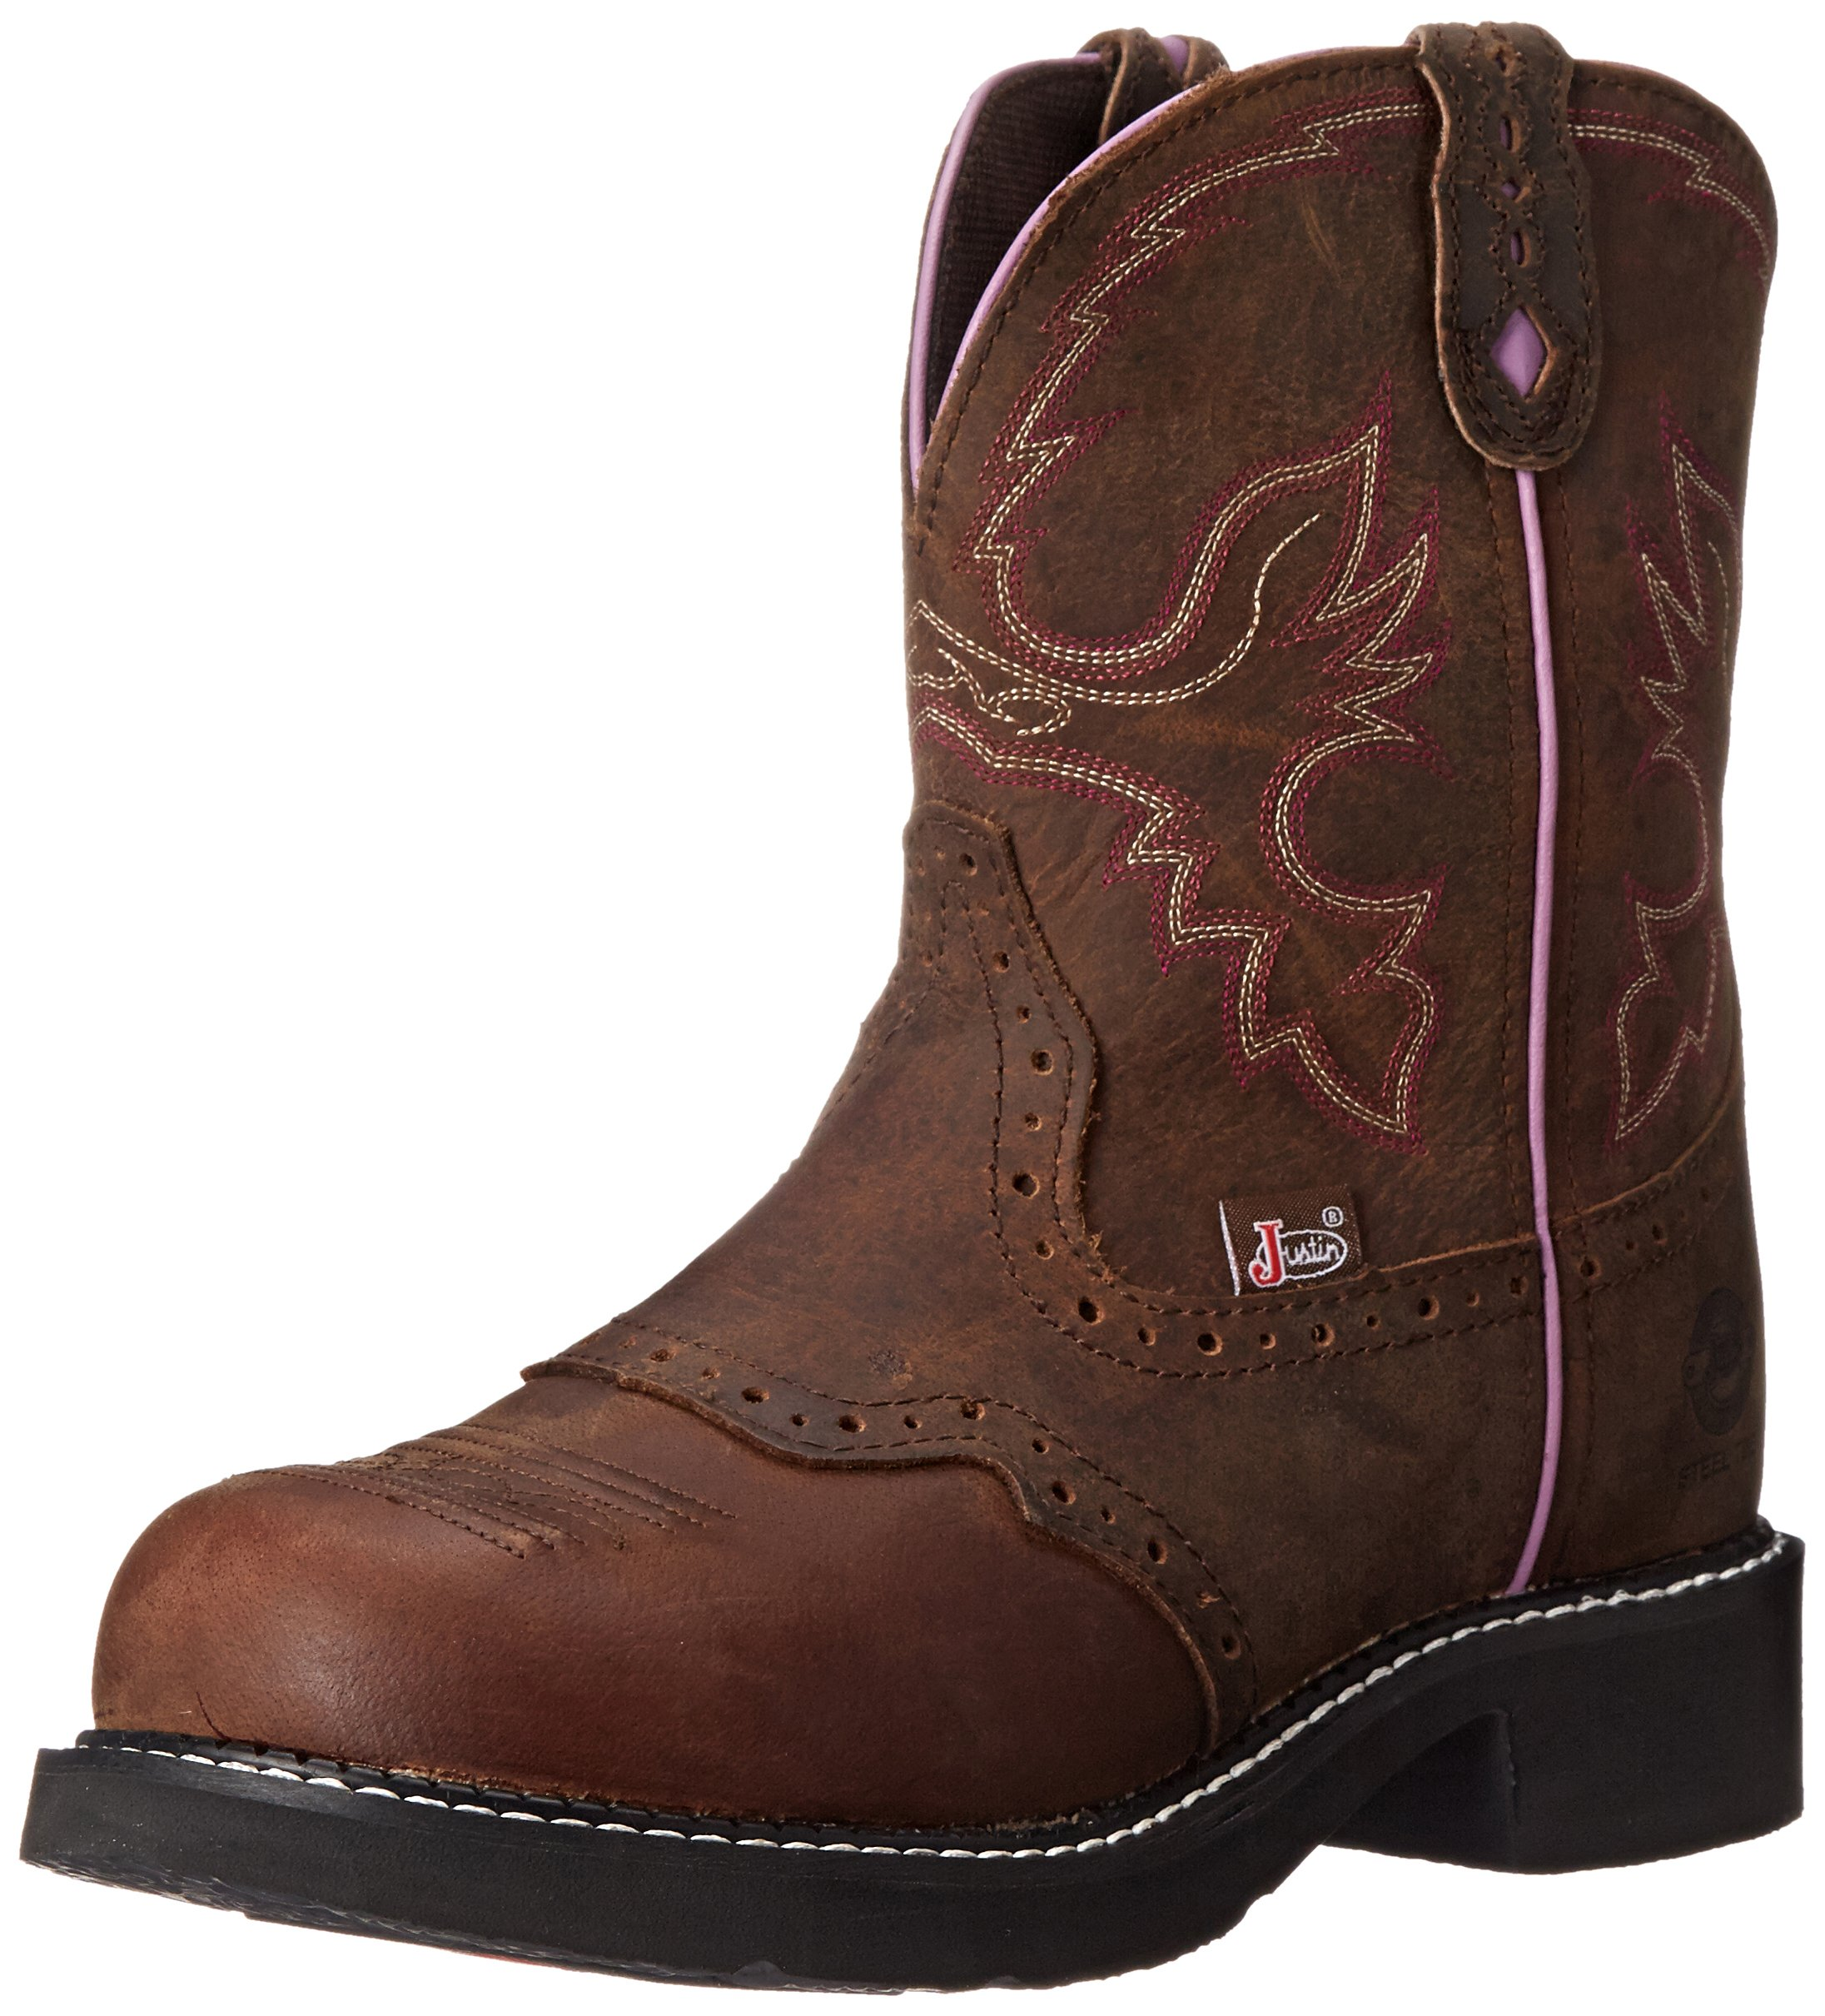 Justin Boots Women's Gypsy Collection 8'' Steel Toe,Aged Bark,6B by Justin Boots (Image #1)